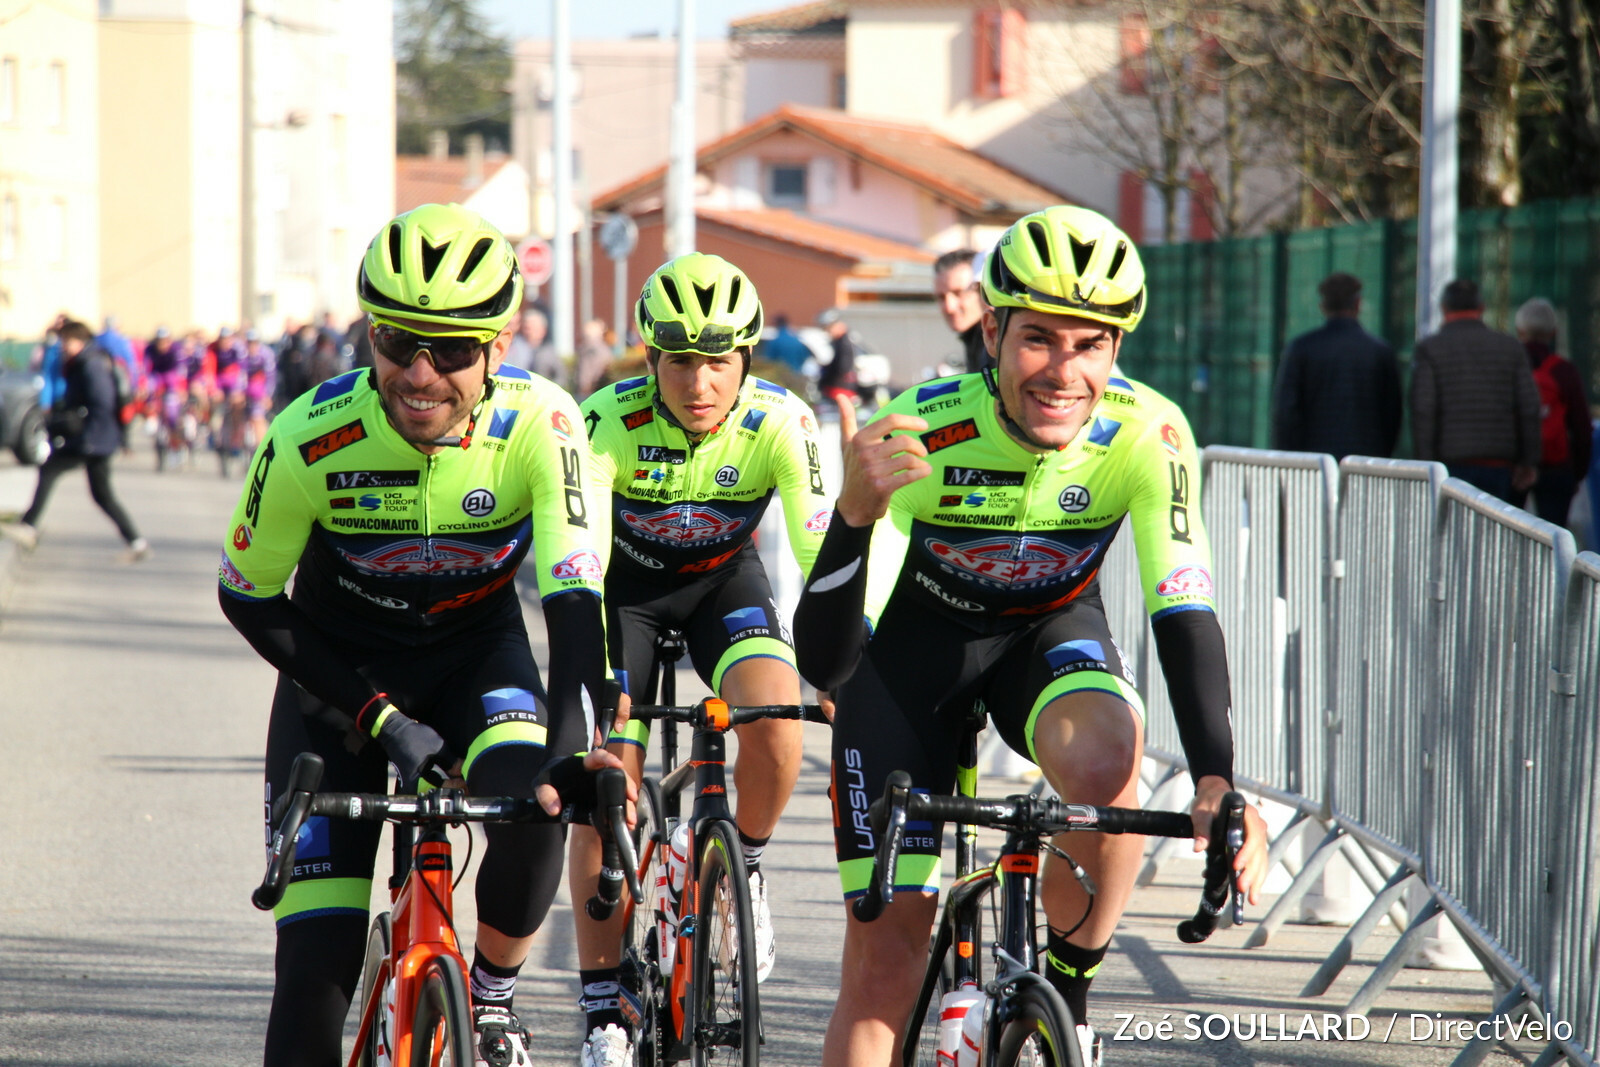 TOUR DE HONGRIE: MARENGO AND VISCONTI SPRINTED IN THE TOP 10 OF THE 1ST STAGE